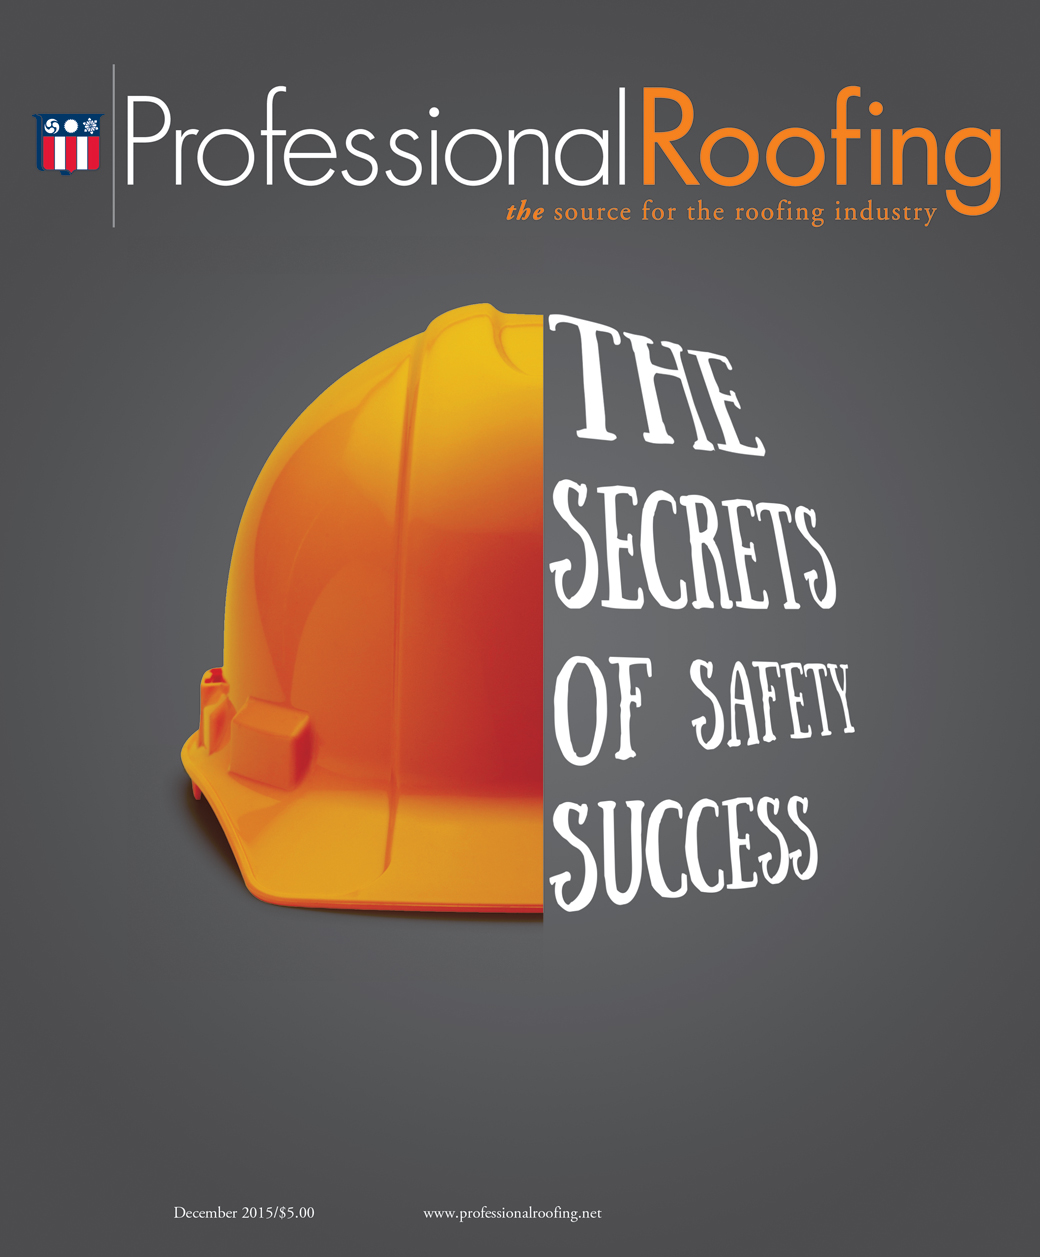 Professional Roofing Magazine 12/1/2015